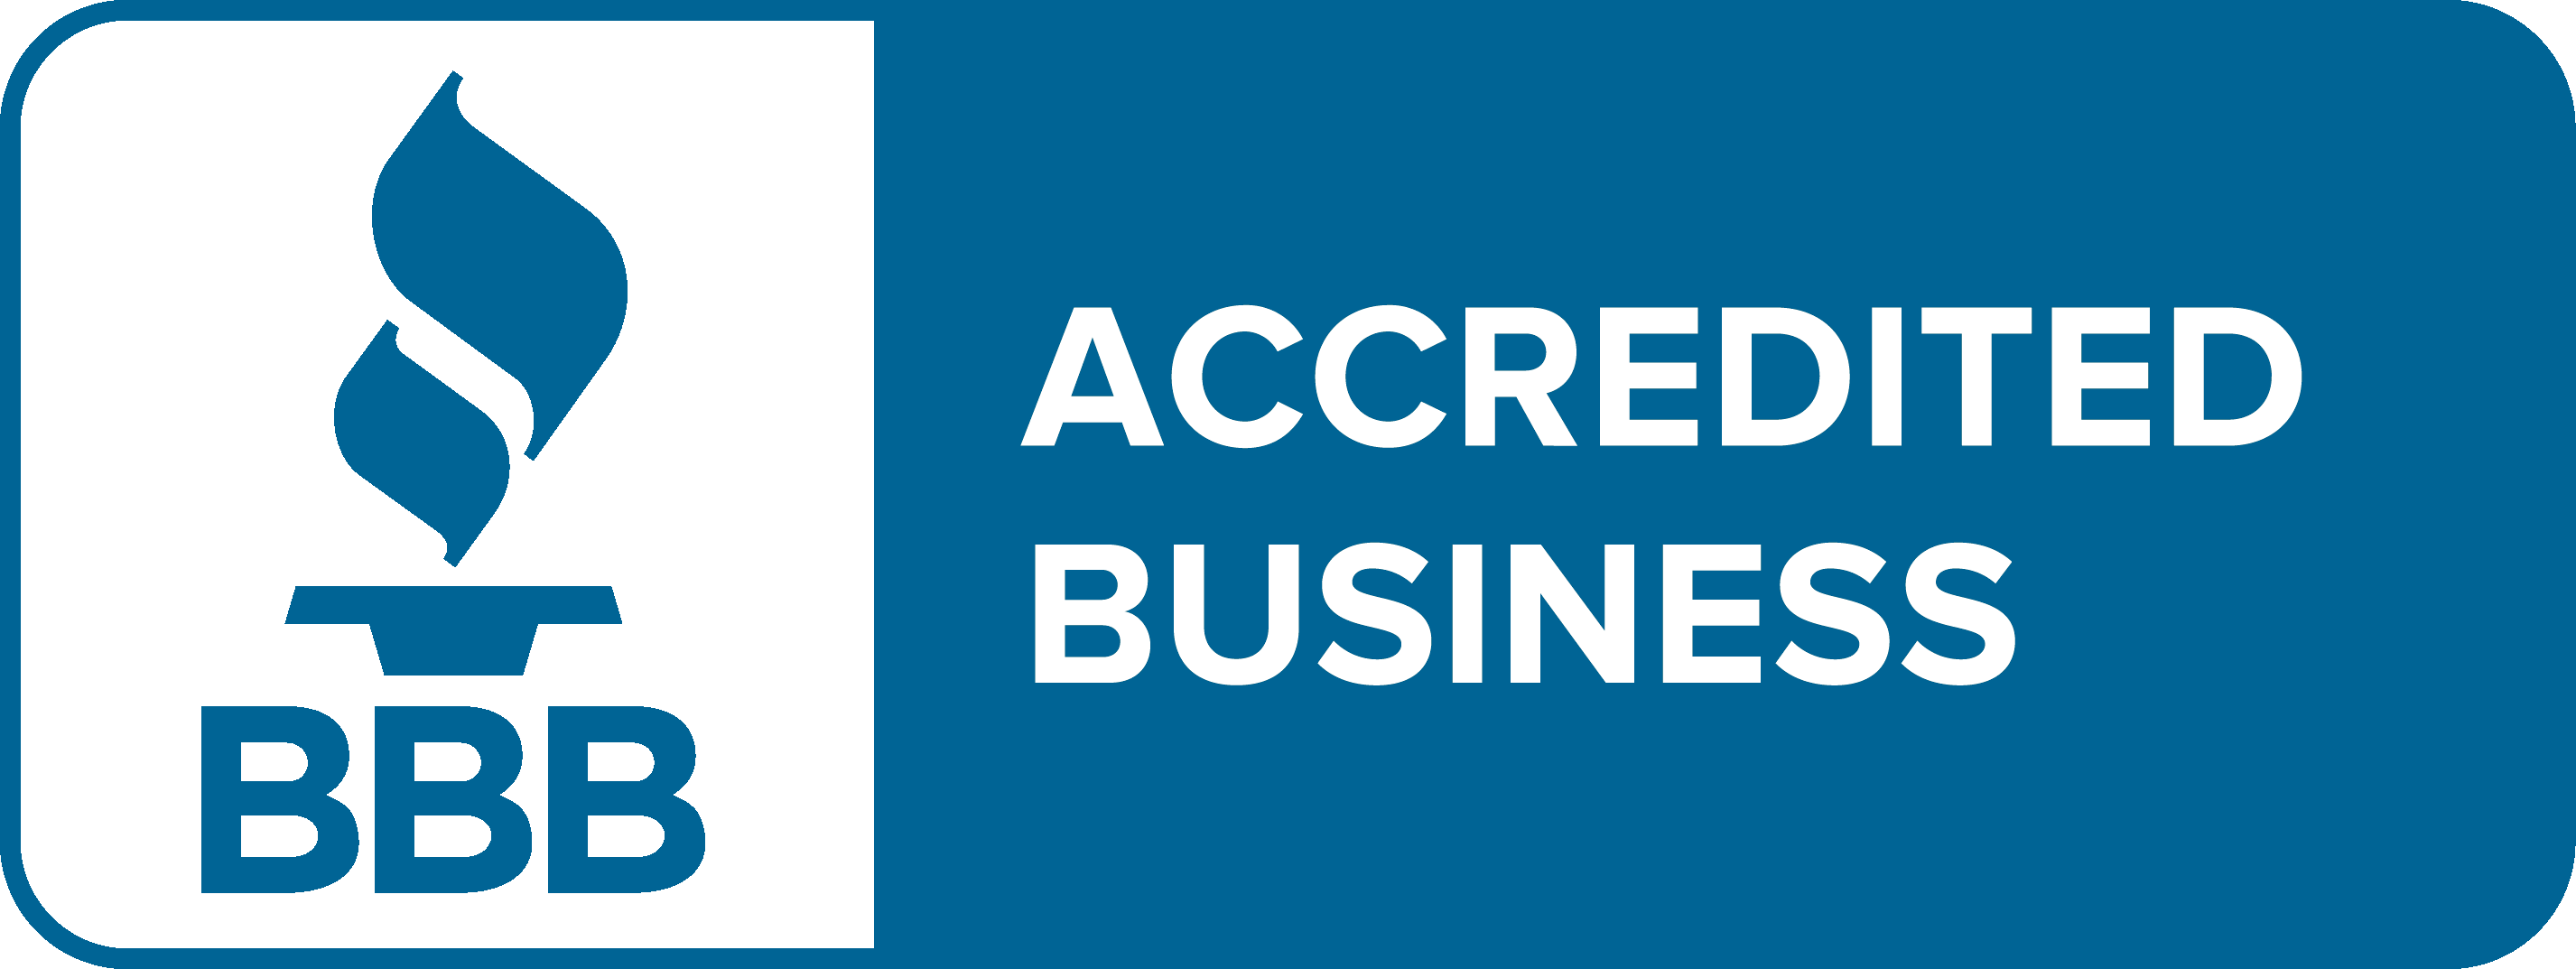 BBB Accredited Business Logo Horizontal